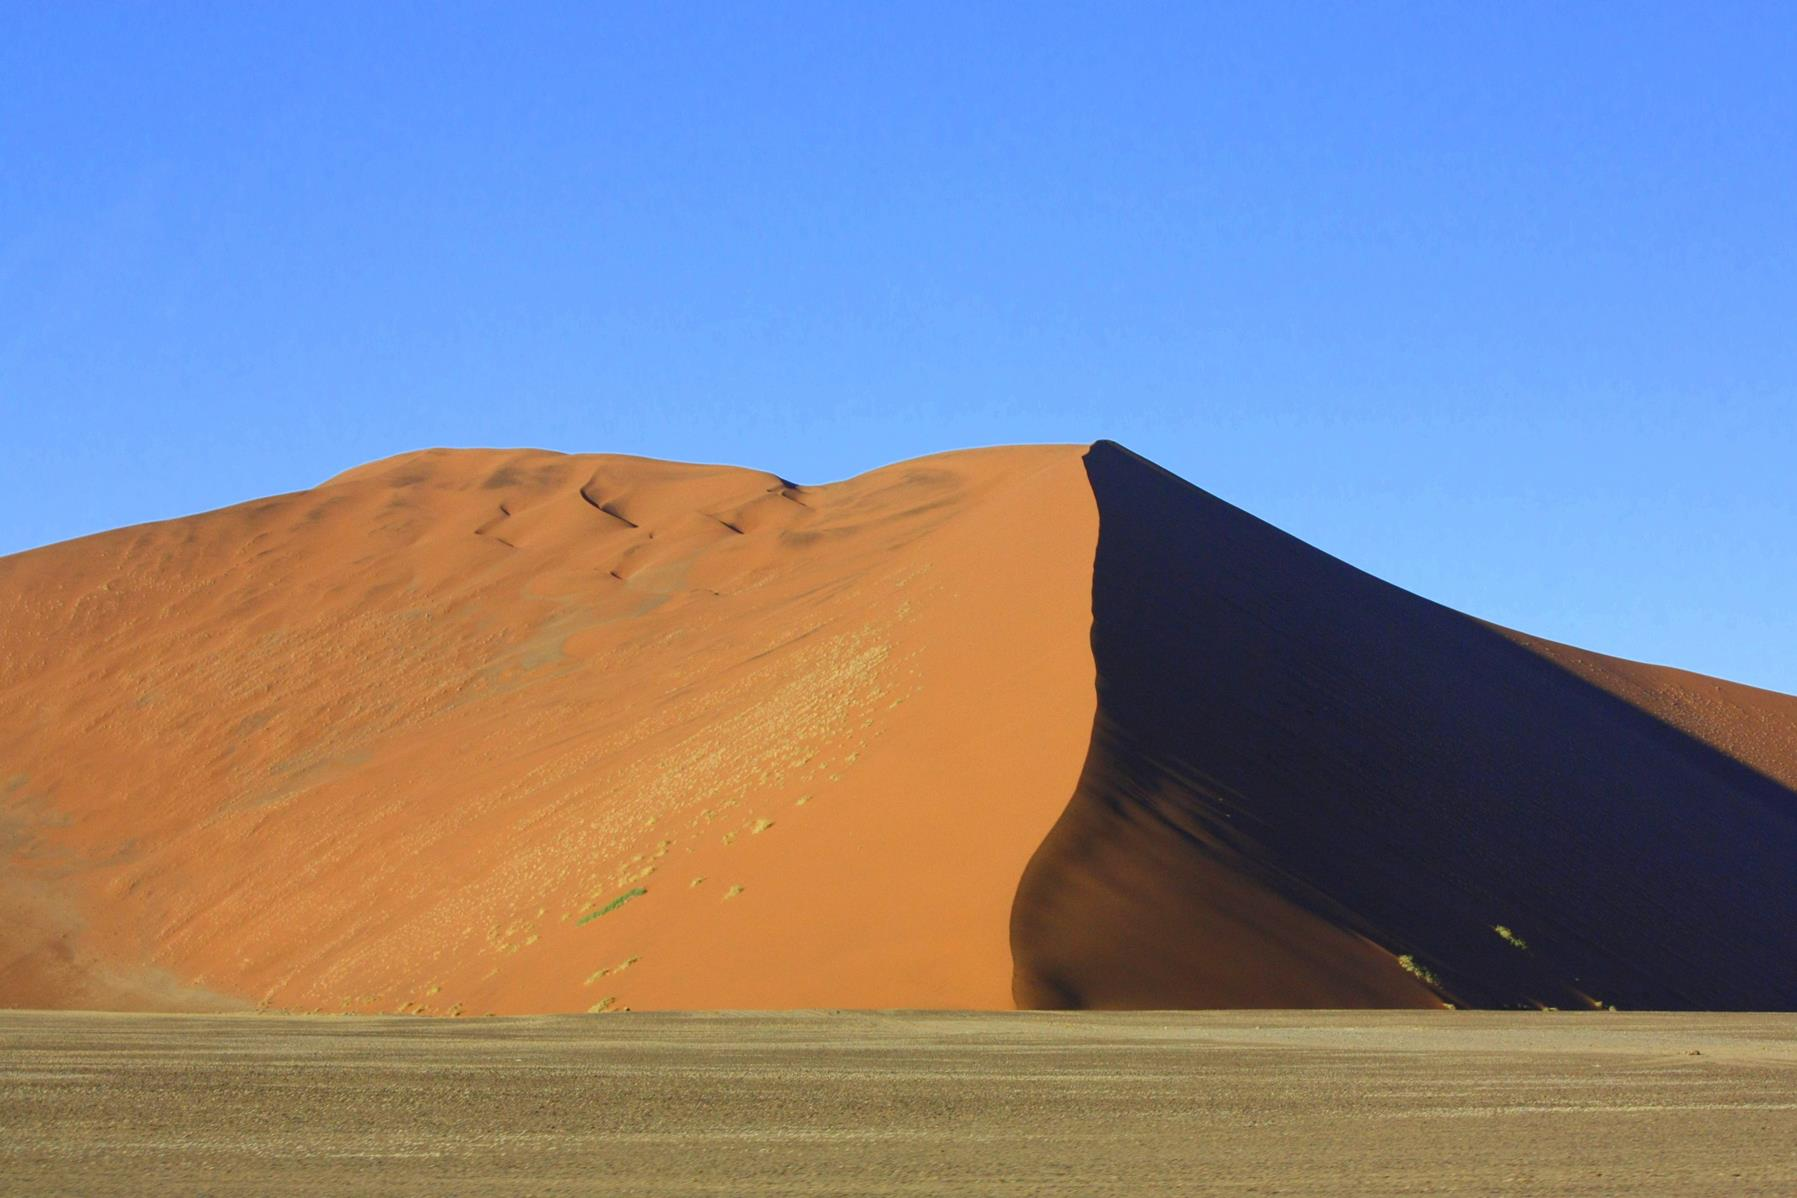 The red dunes of Sossusvlei derive their colour from the oxidation of iron in the sand.